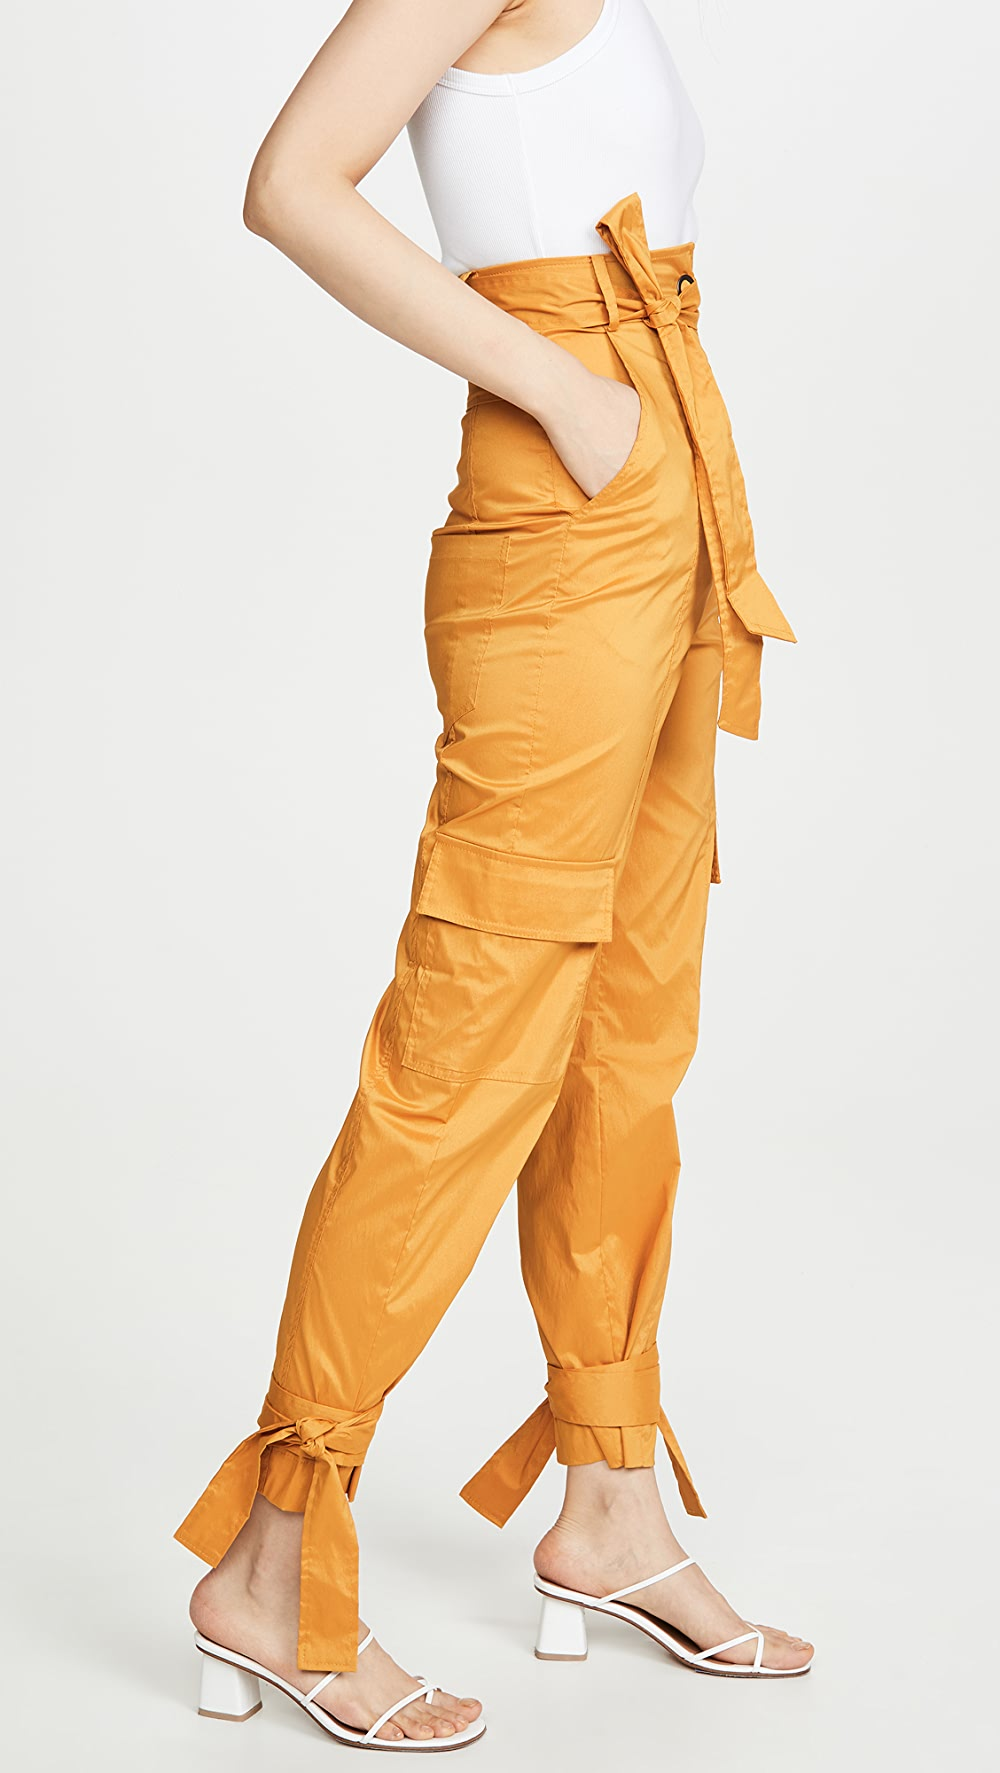 2019 New Style Manning Cartell Australia - Victory Lap Pants For Improving Blood Circulation